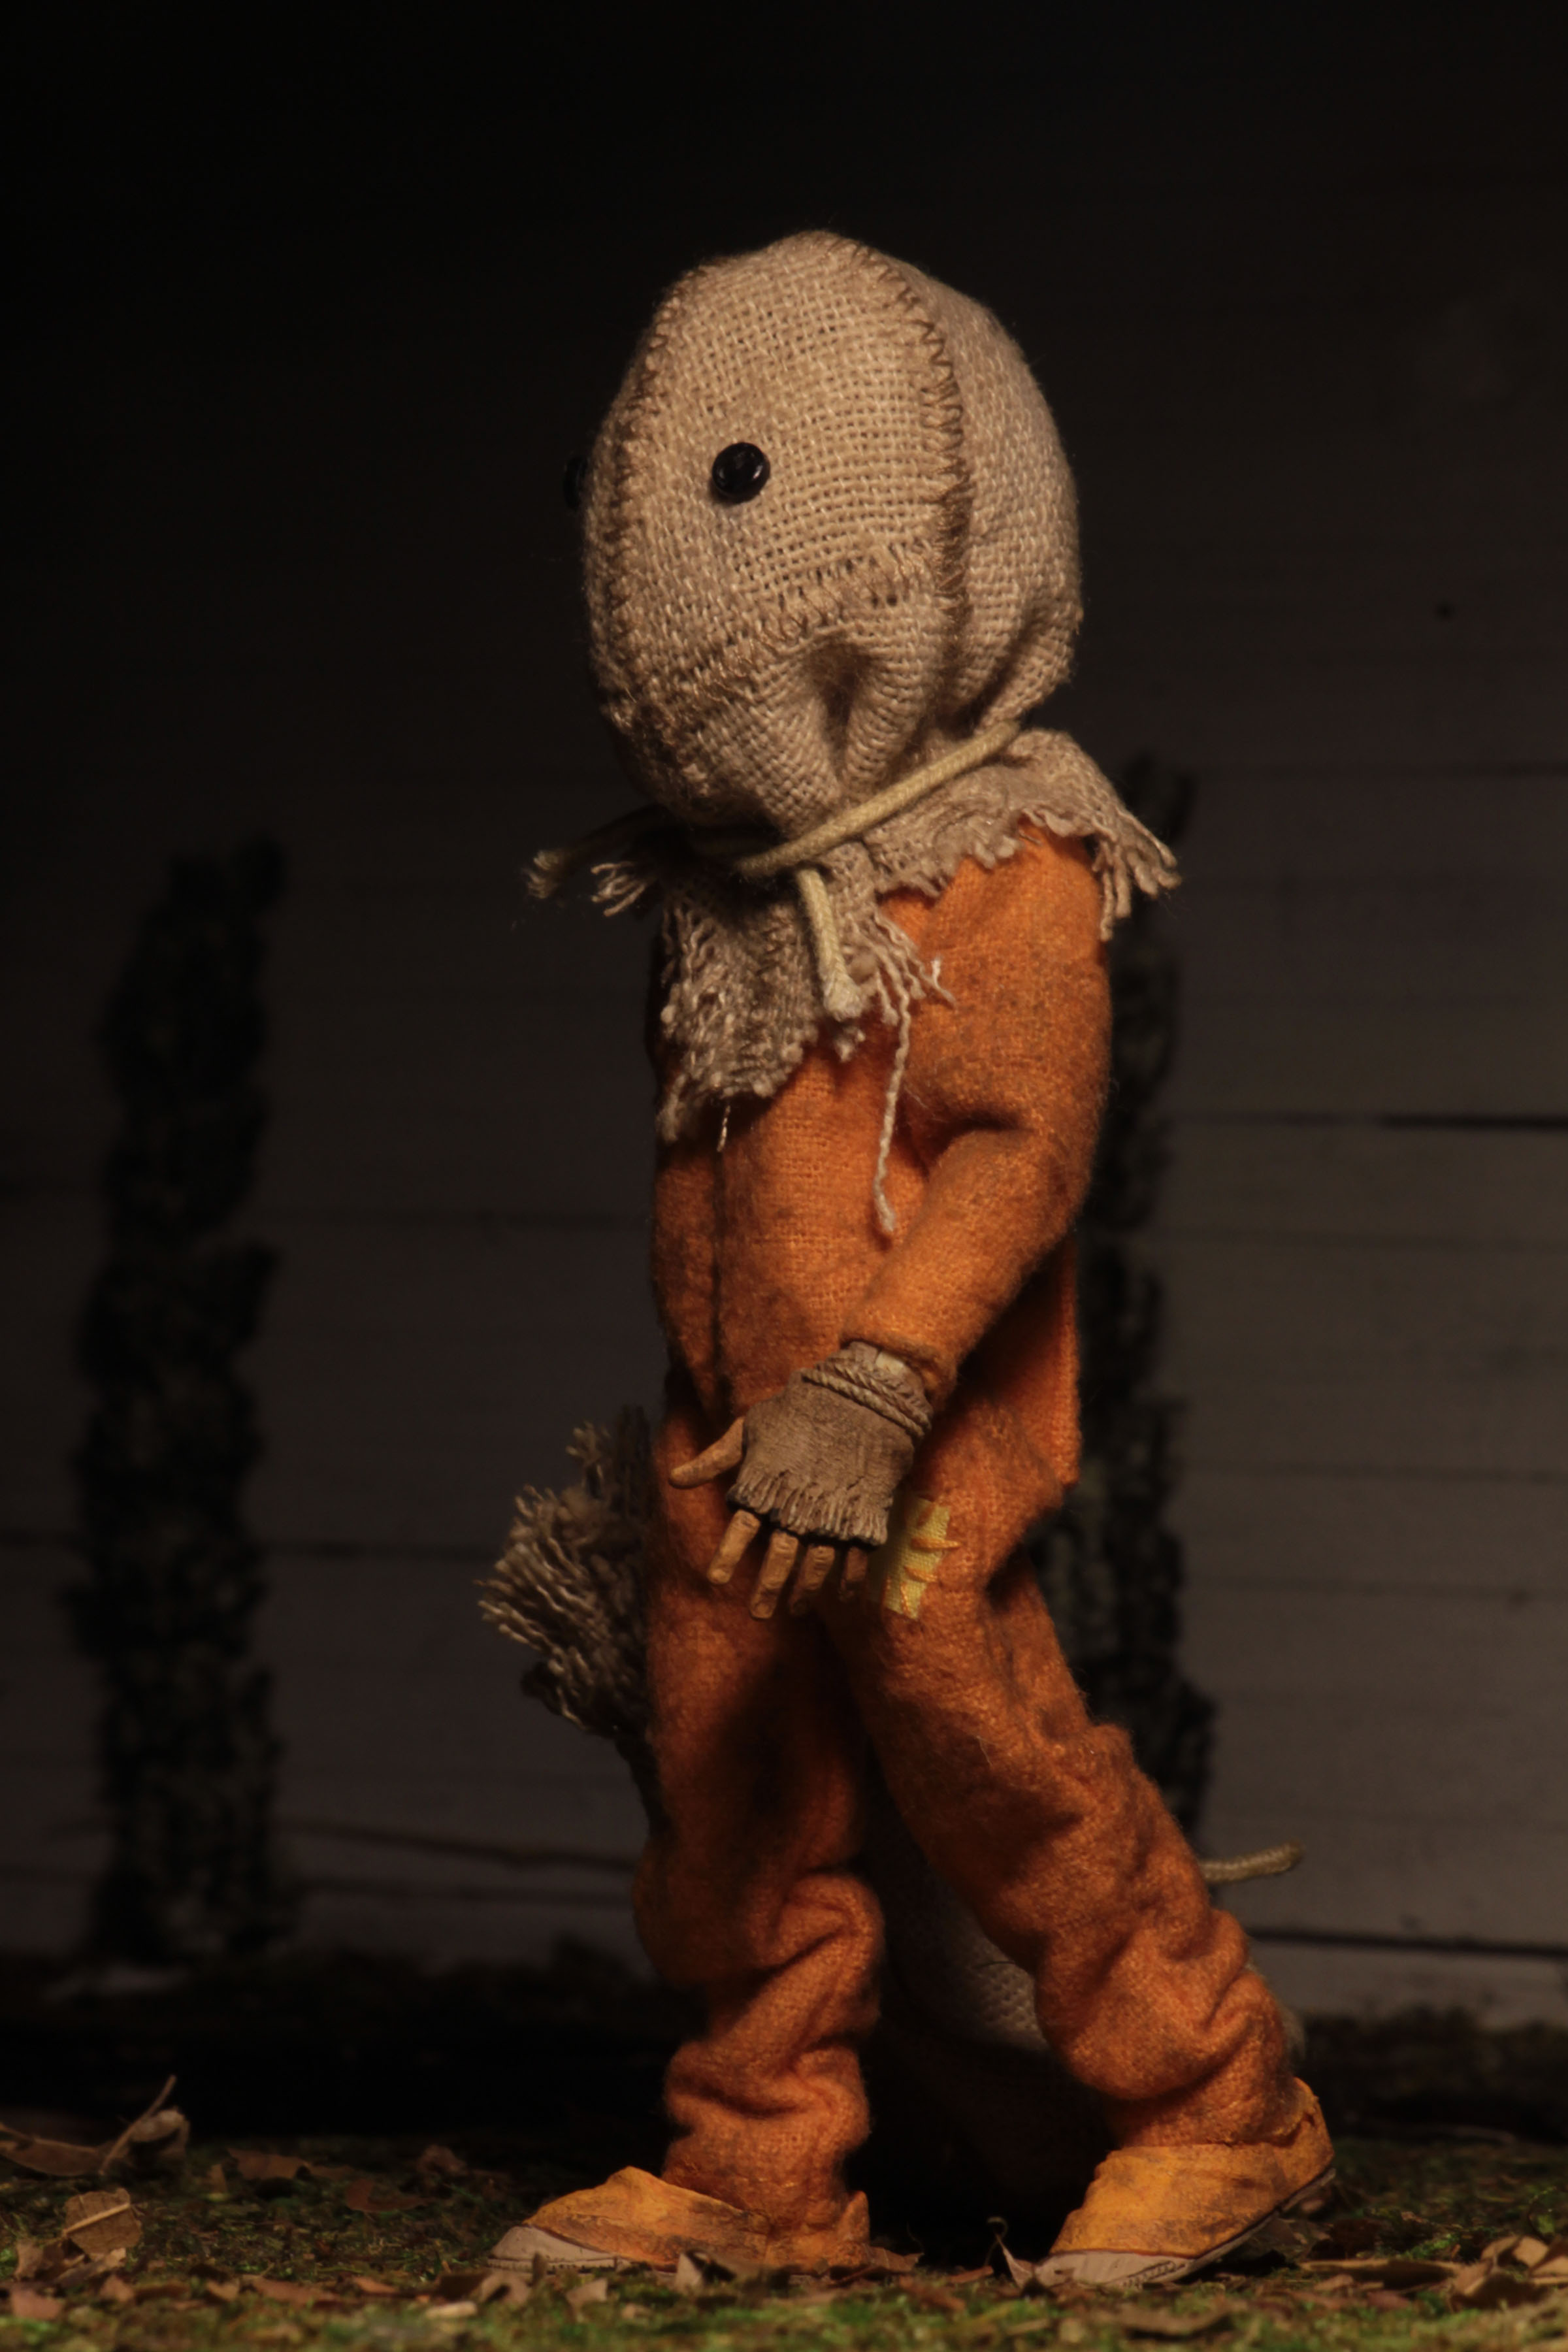 Toy Fair 2019 Neca Sam Clothed Figure From Trick R Treat The